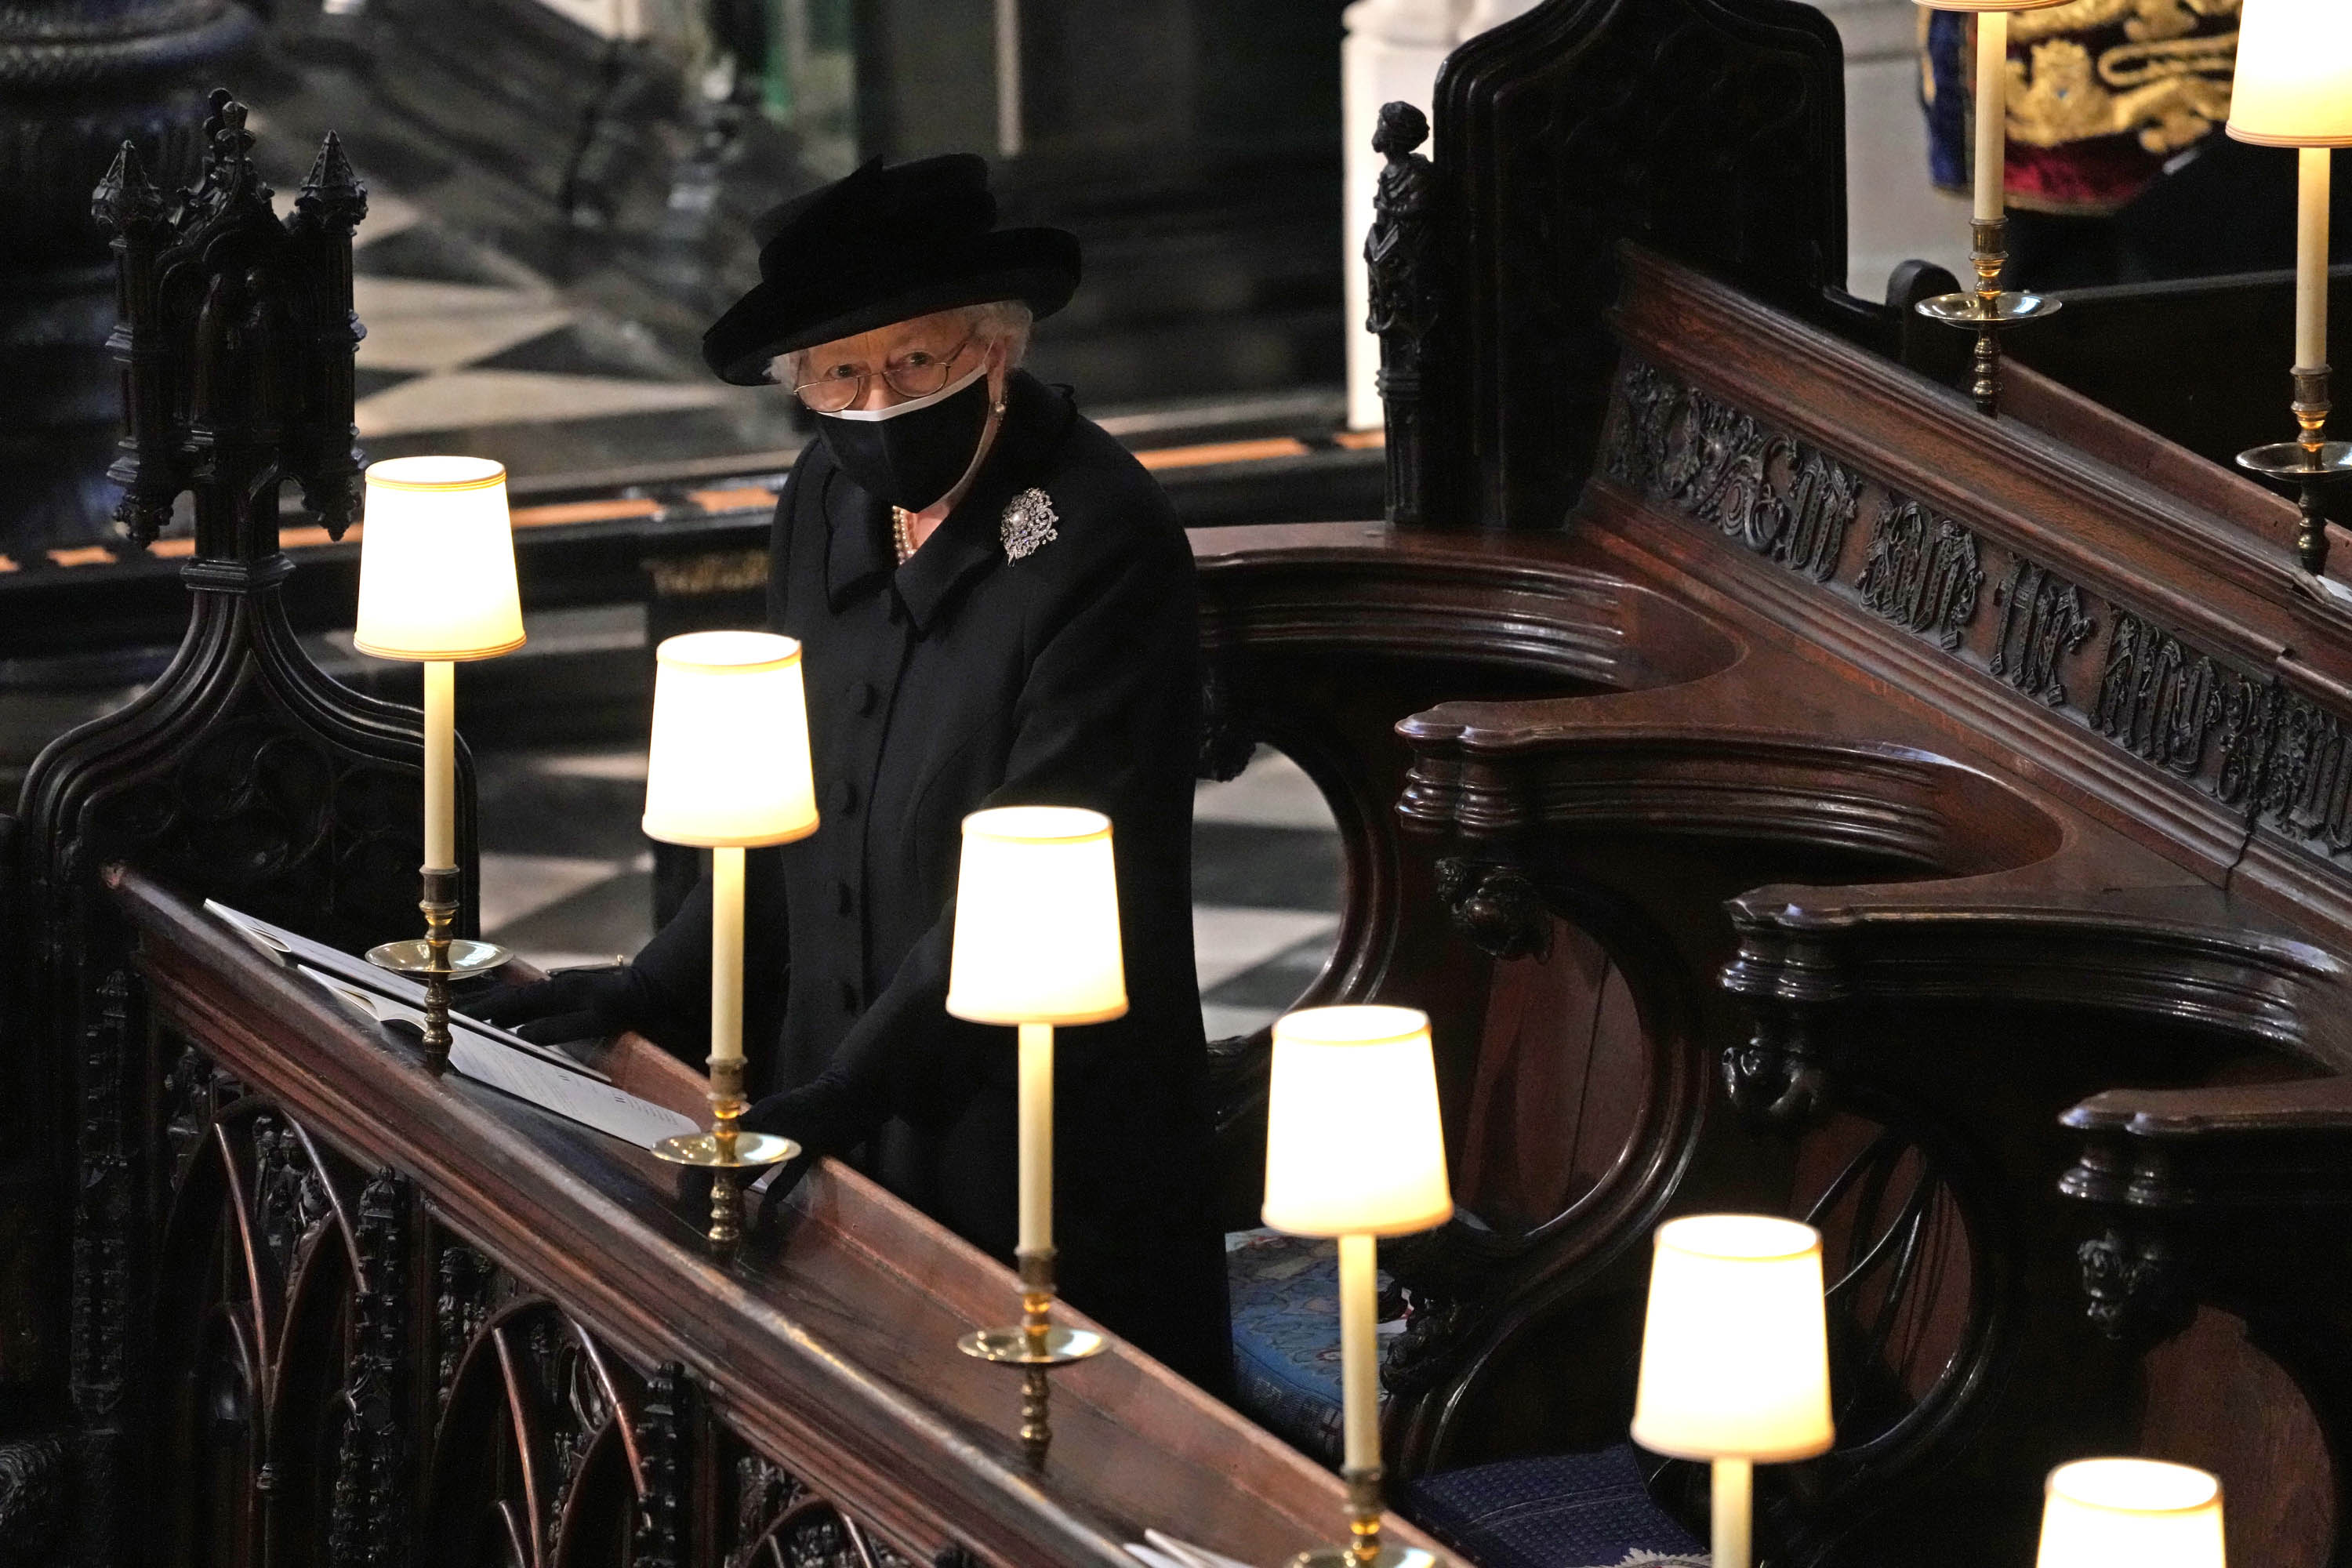 Queen Elizabeth II is pictured during the funeral of her husband, Prince Philip, the Duke of Edinburgh, in St. George's Chapel at Windsor Castle, on Saturday, April 17.